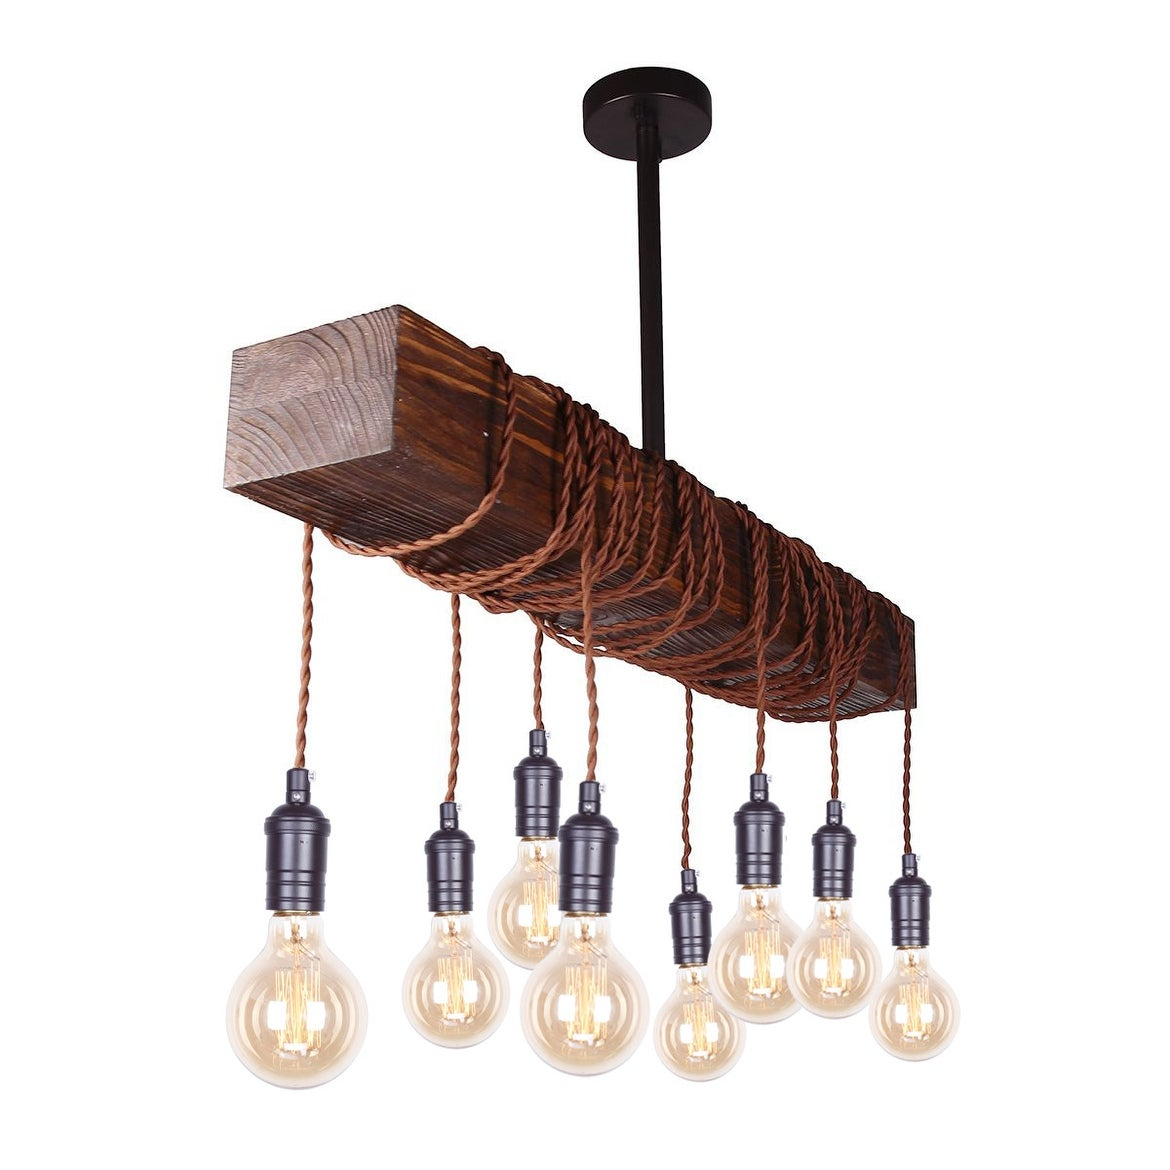 Shop farmhouse 8 light distressed wood beam chandelier on sale free shipping today overstock com 19427716